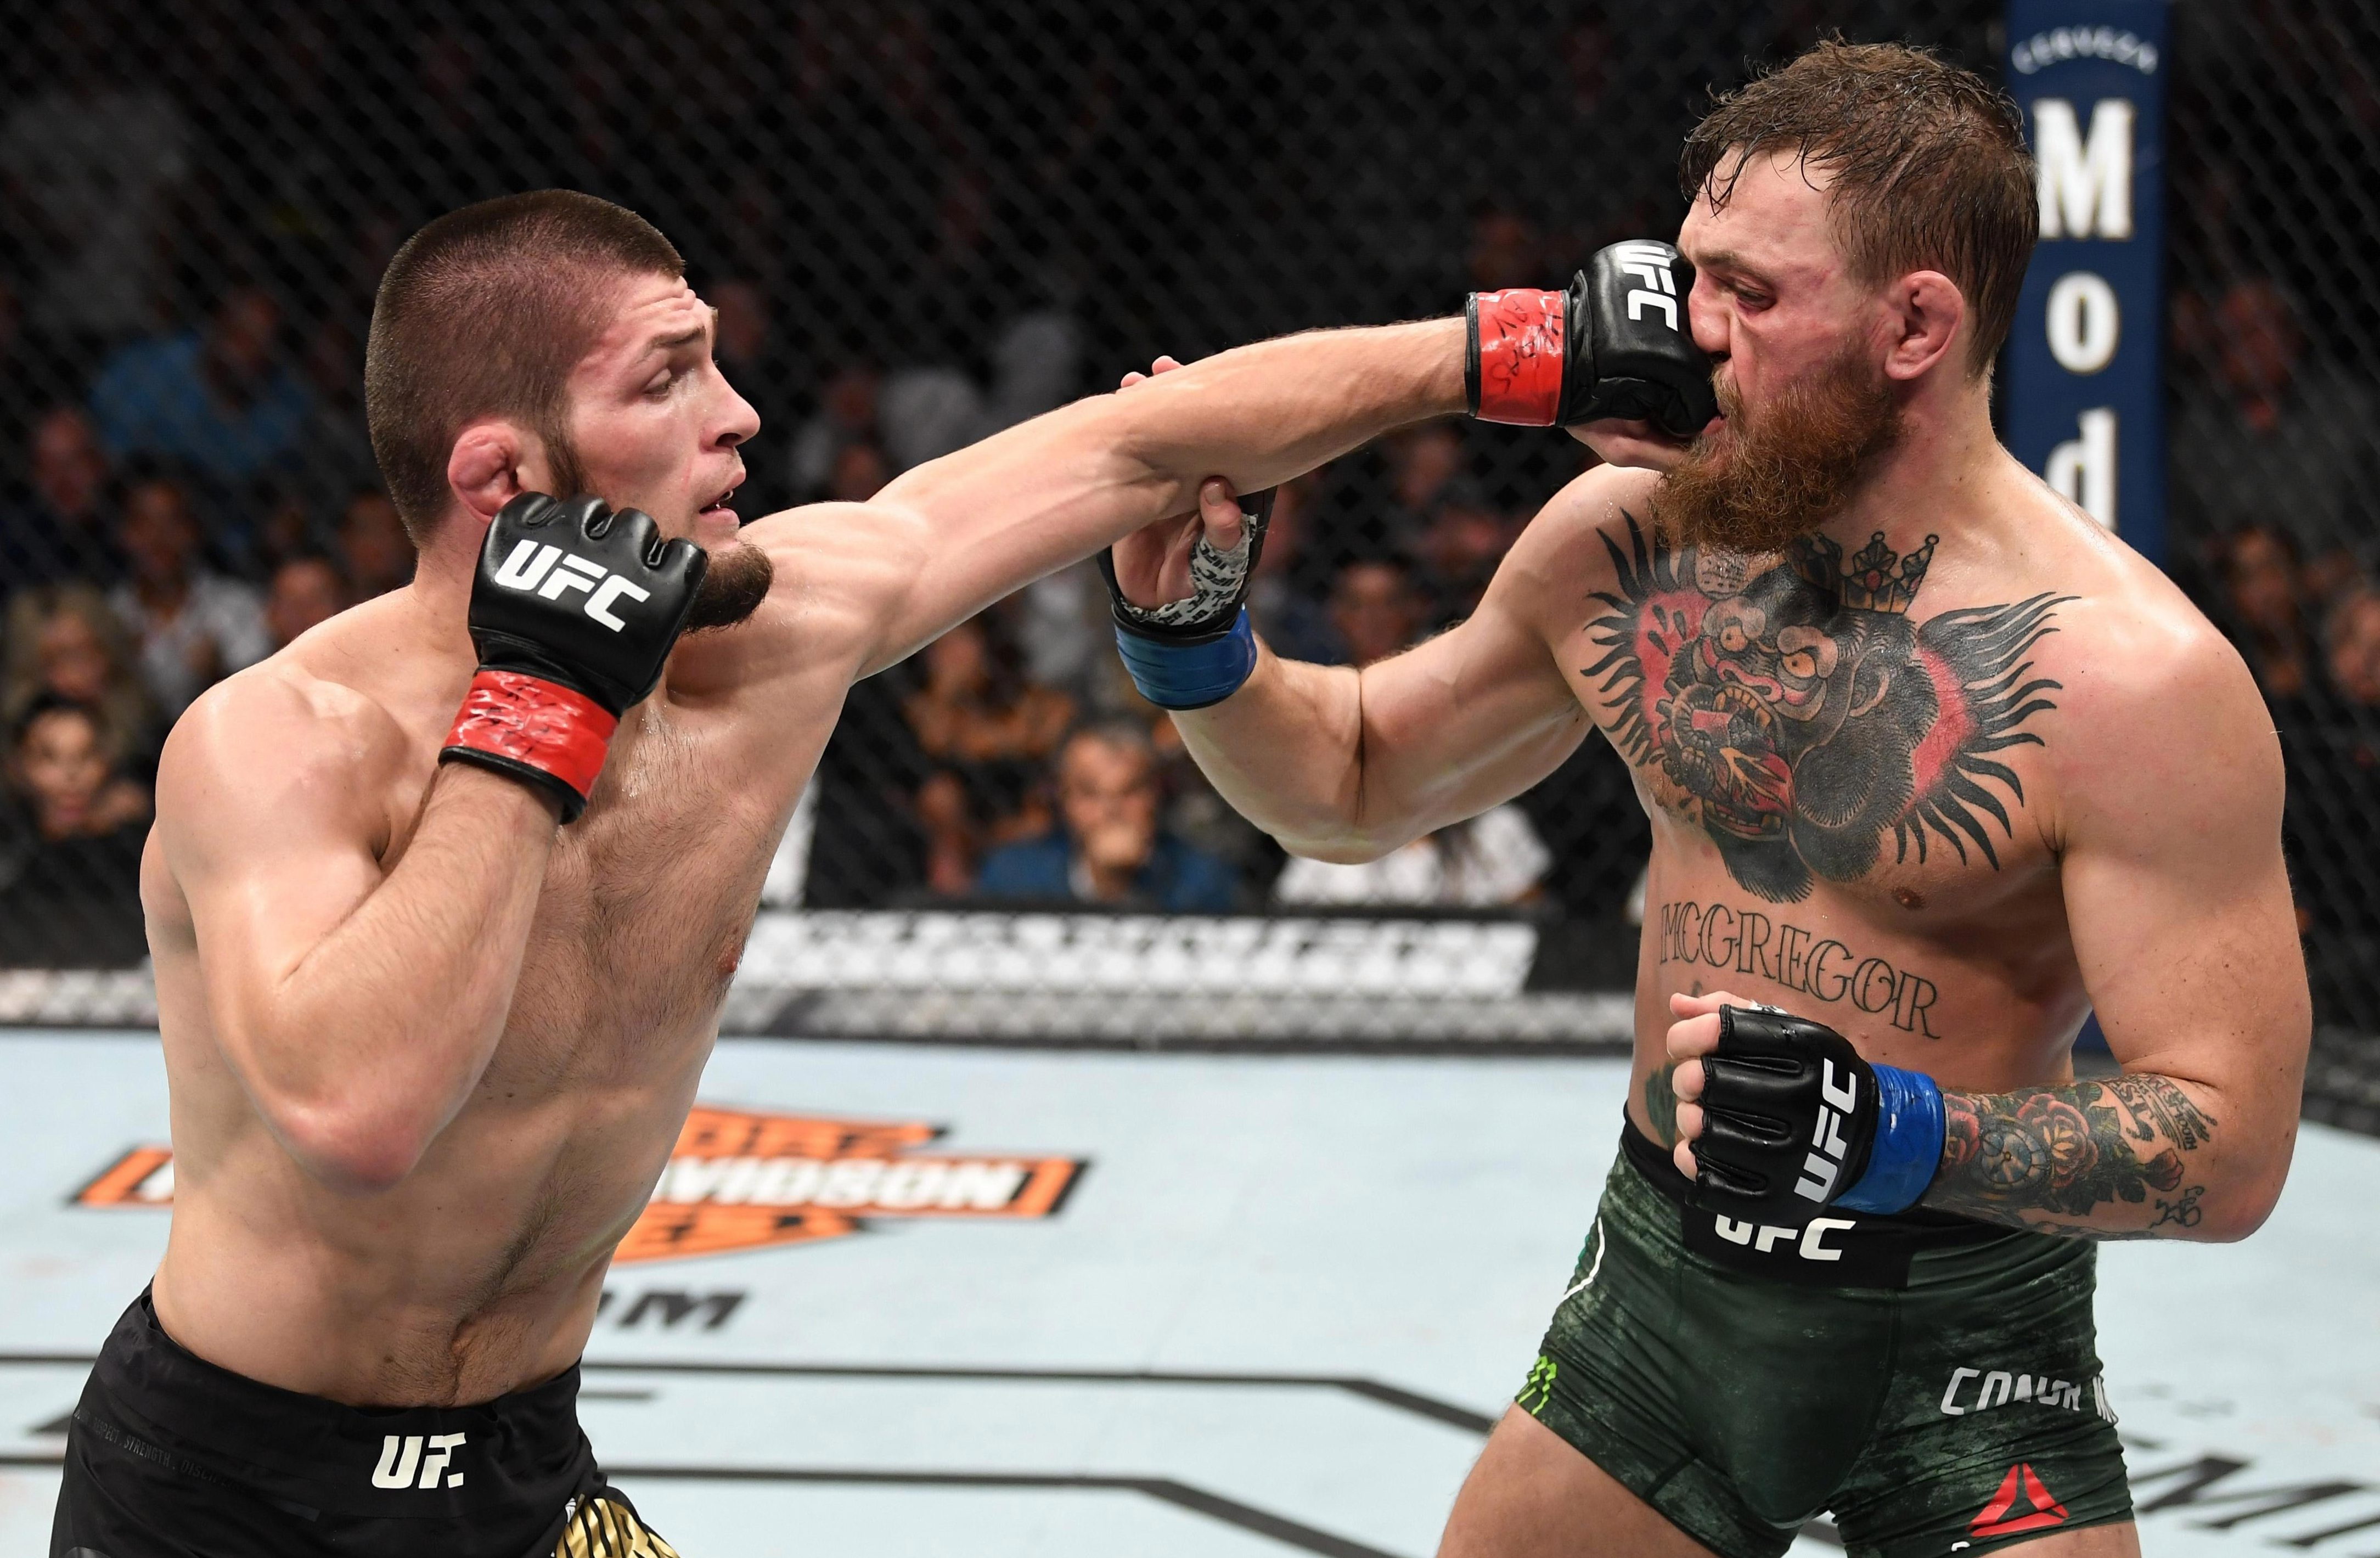 Khabib, 30, proved to be a level above McGregor at the T-Mobile Arena